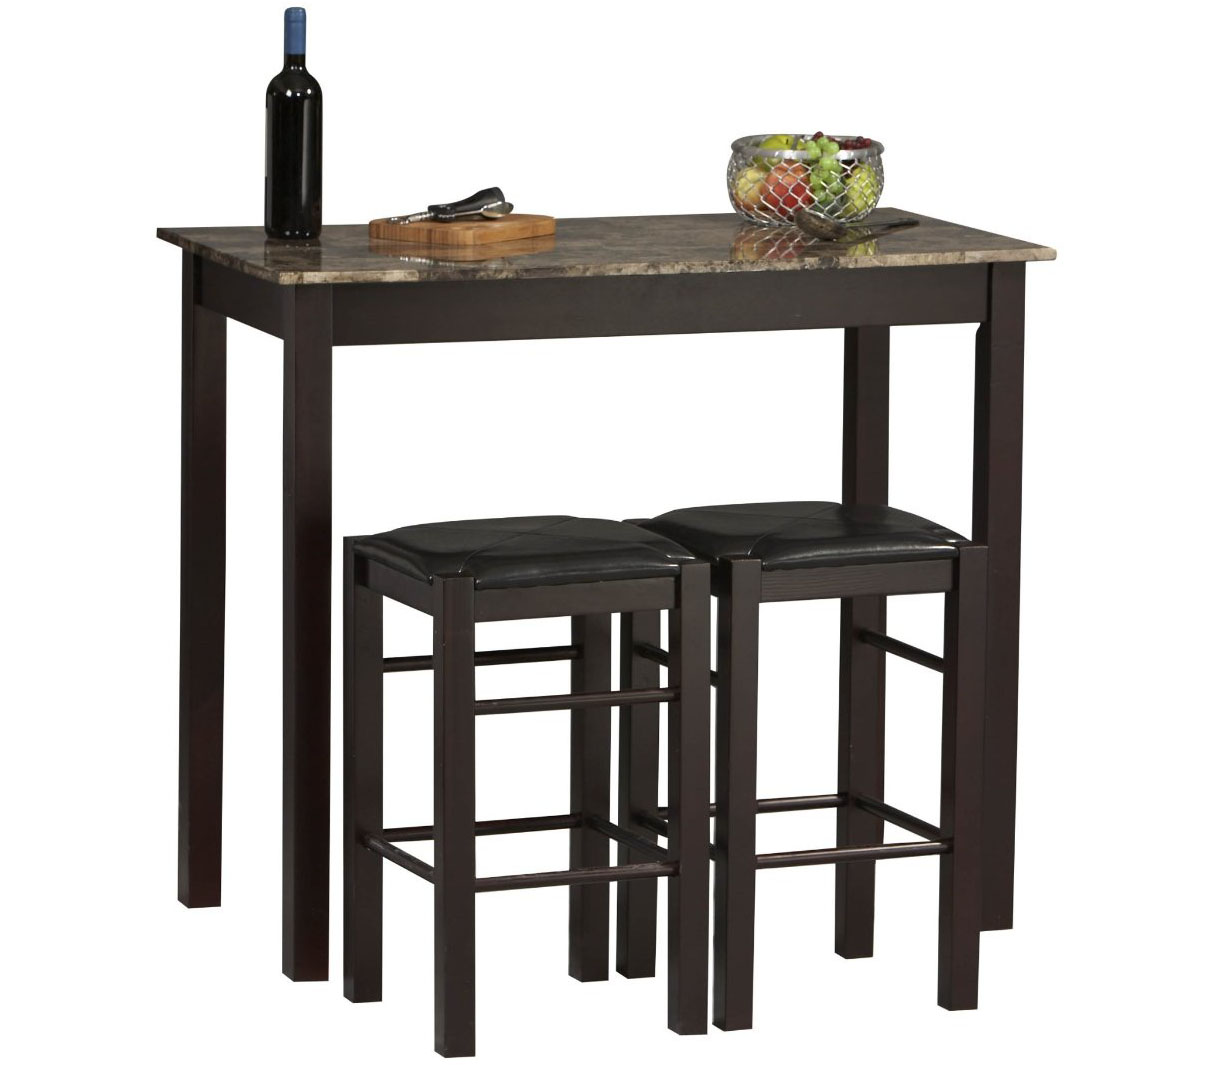 Rectangular Bar Table Set with Stools